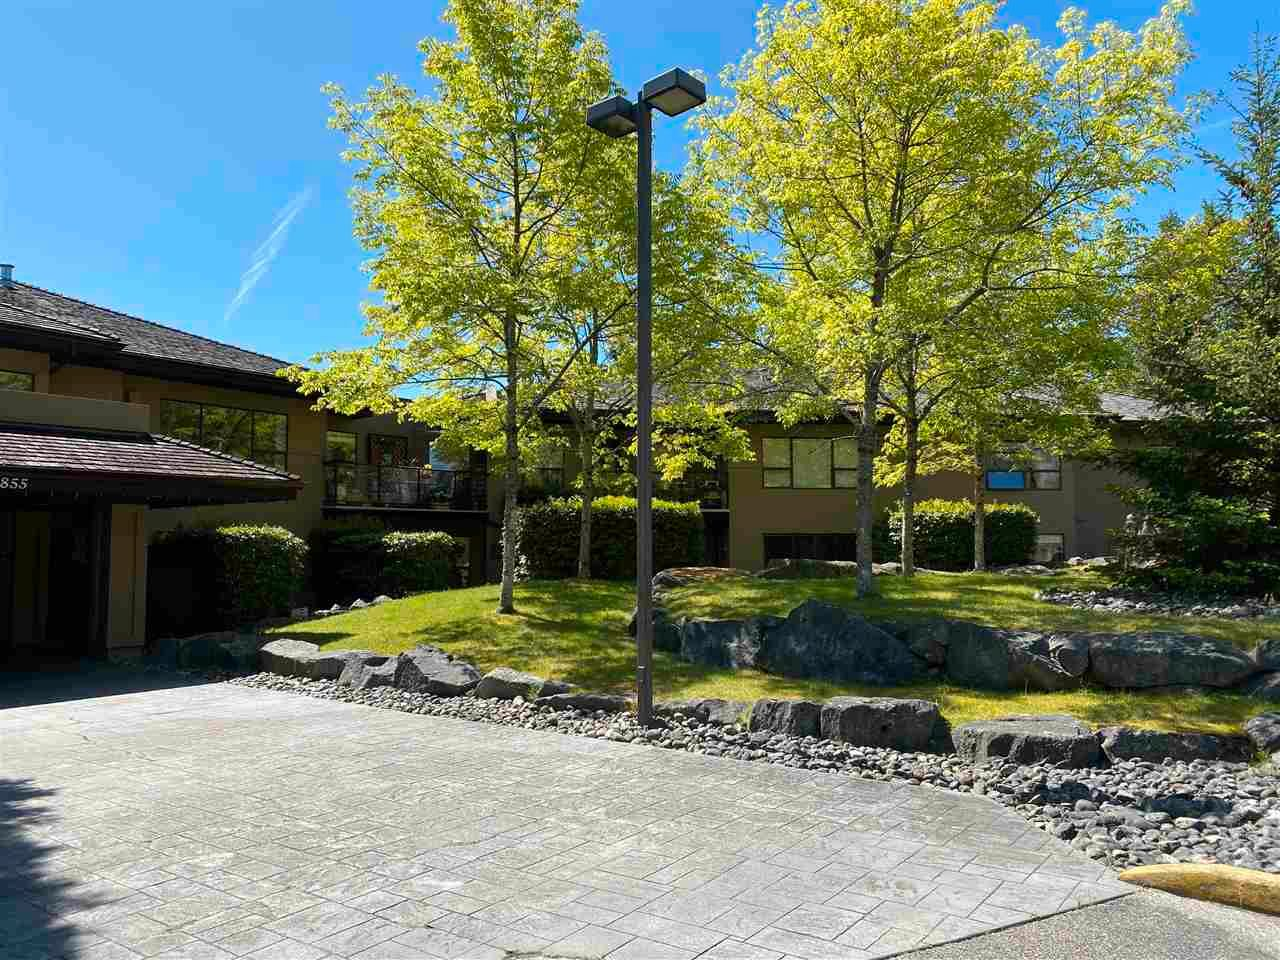 """Main Photo: 403 5855 COWRIE Street in Sechelt: Sechelt District Condo for sale in """"THE OSPREY"""" (Sunshine Coast)  : MLS®# R2581571"""